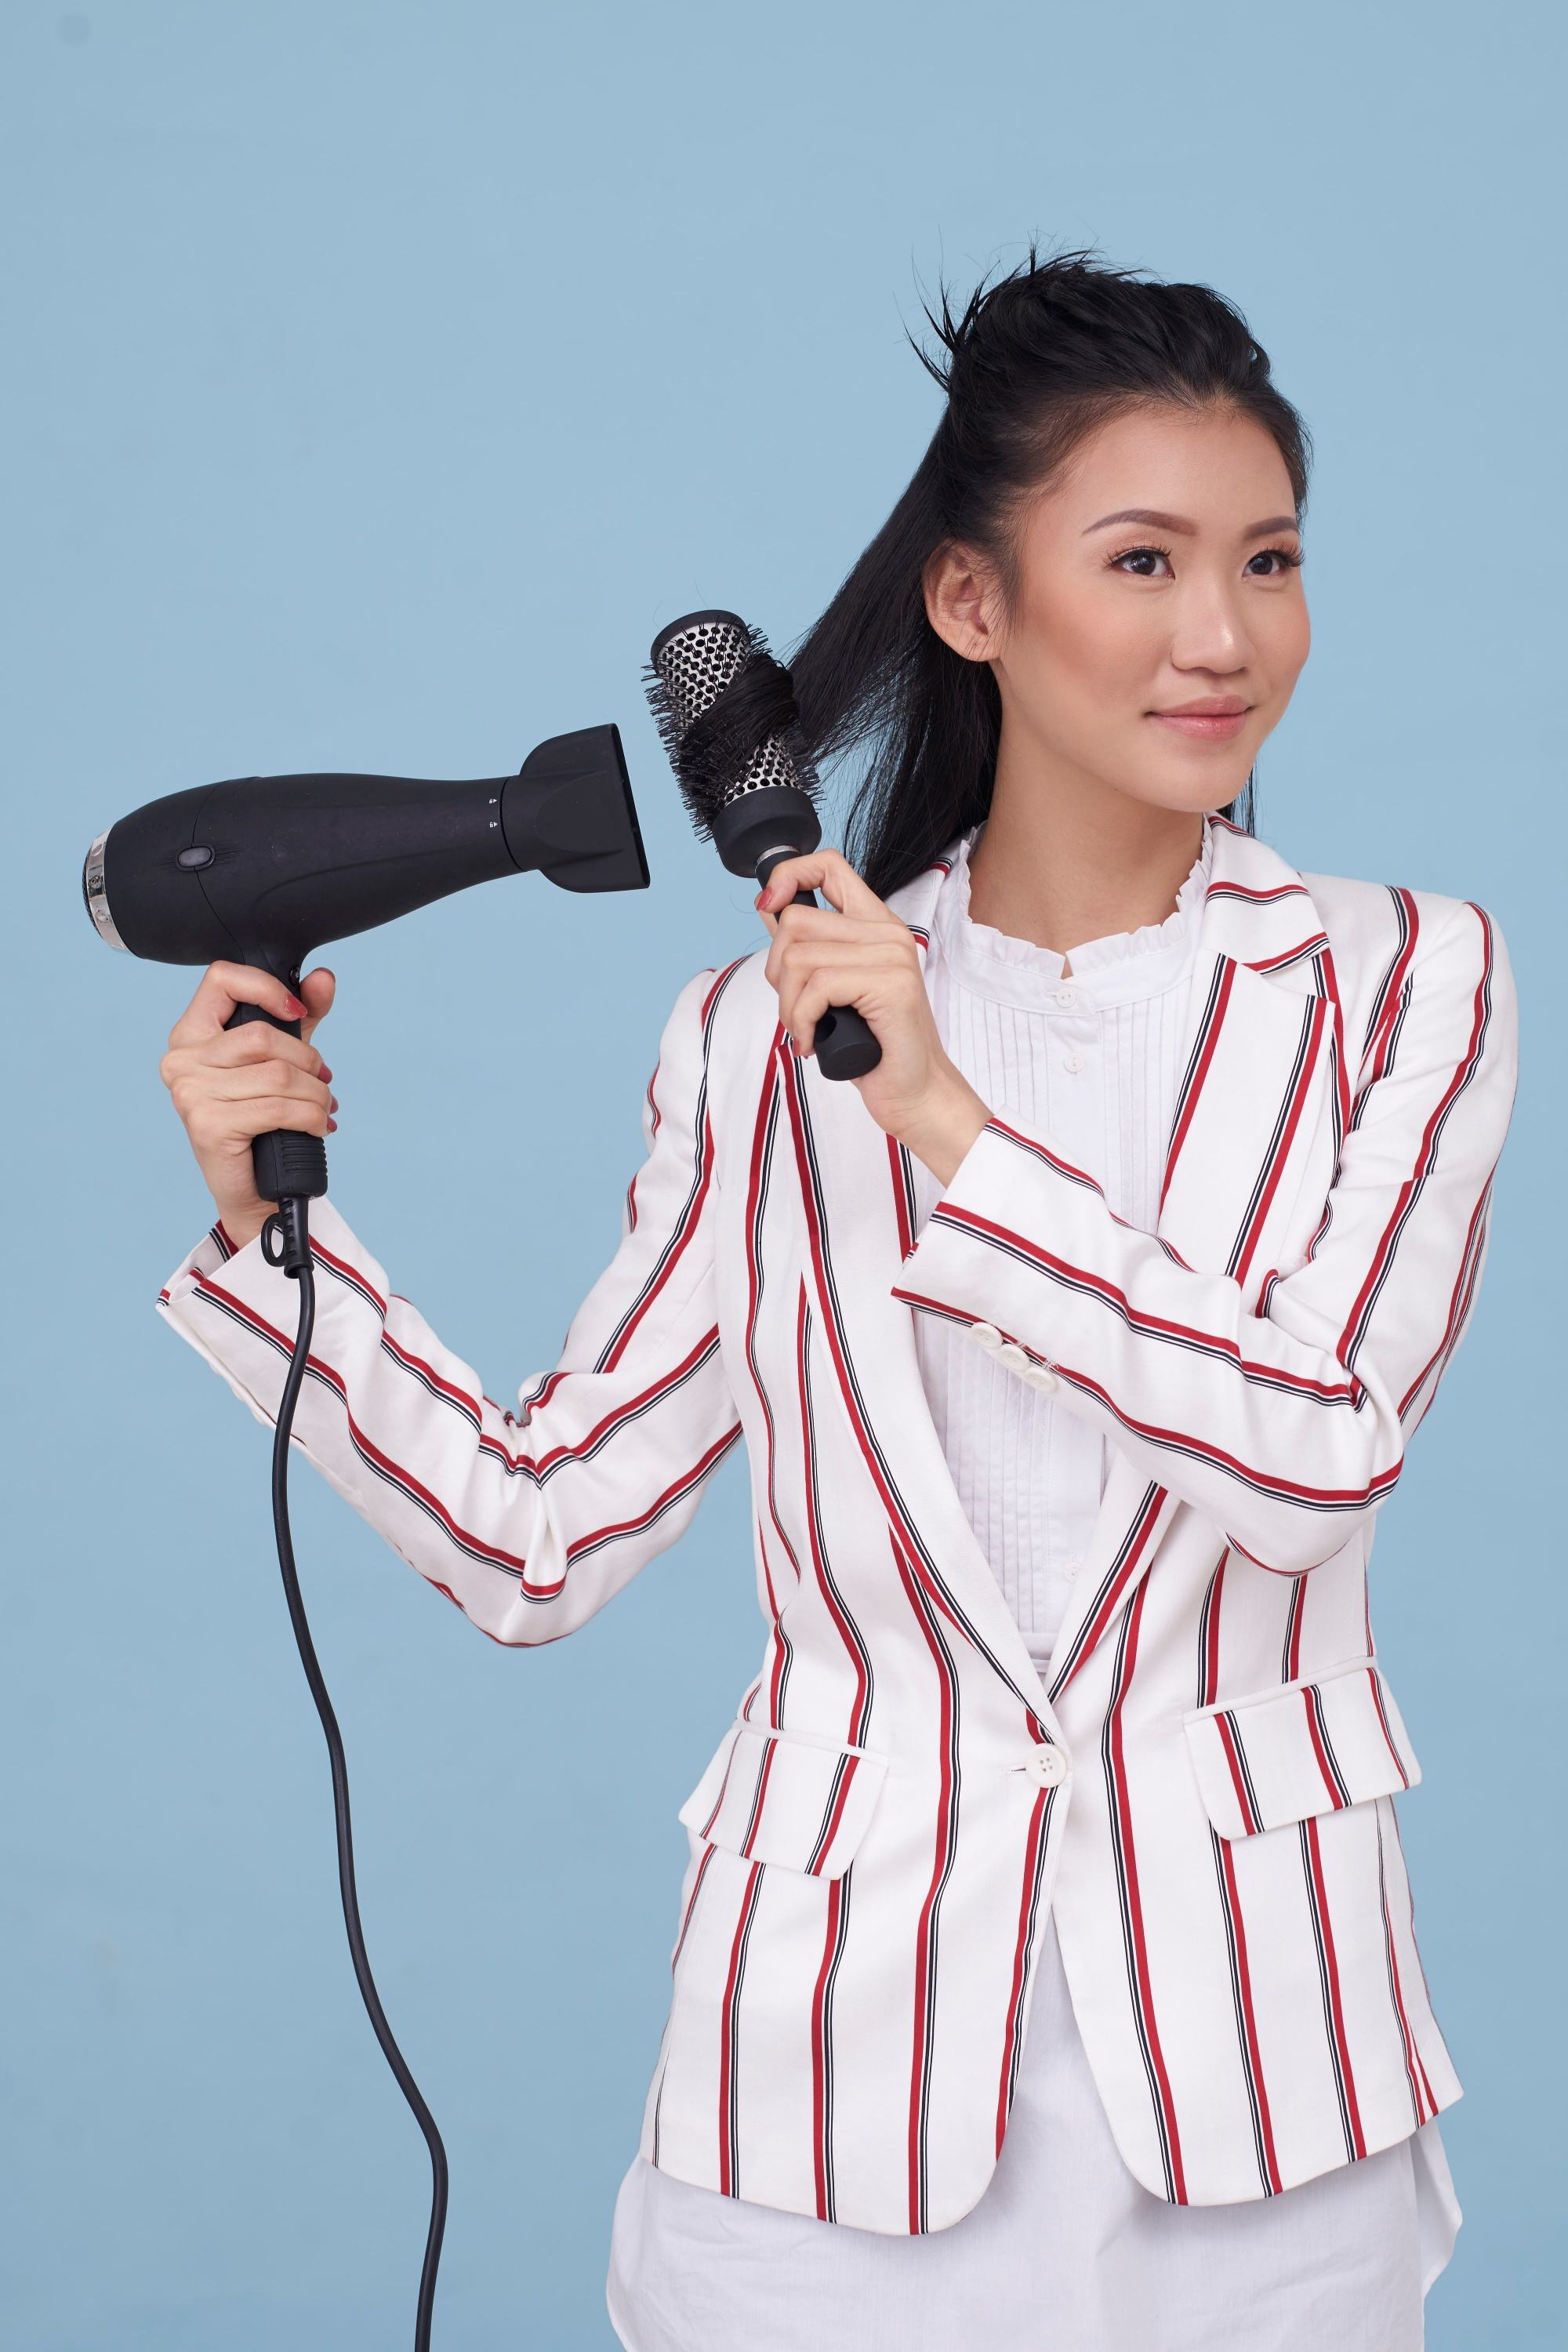 Blow dry your hair: Asian woman blow drying and brushing her medium-length dark hair